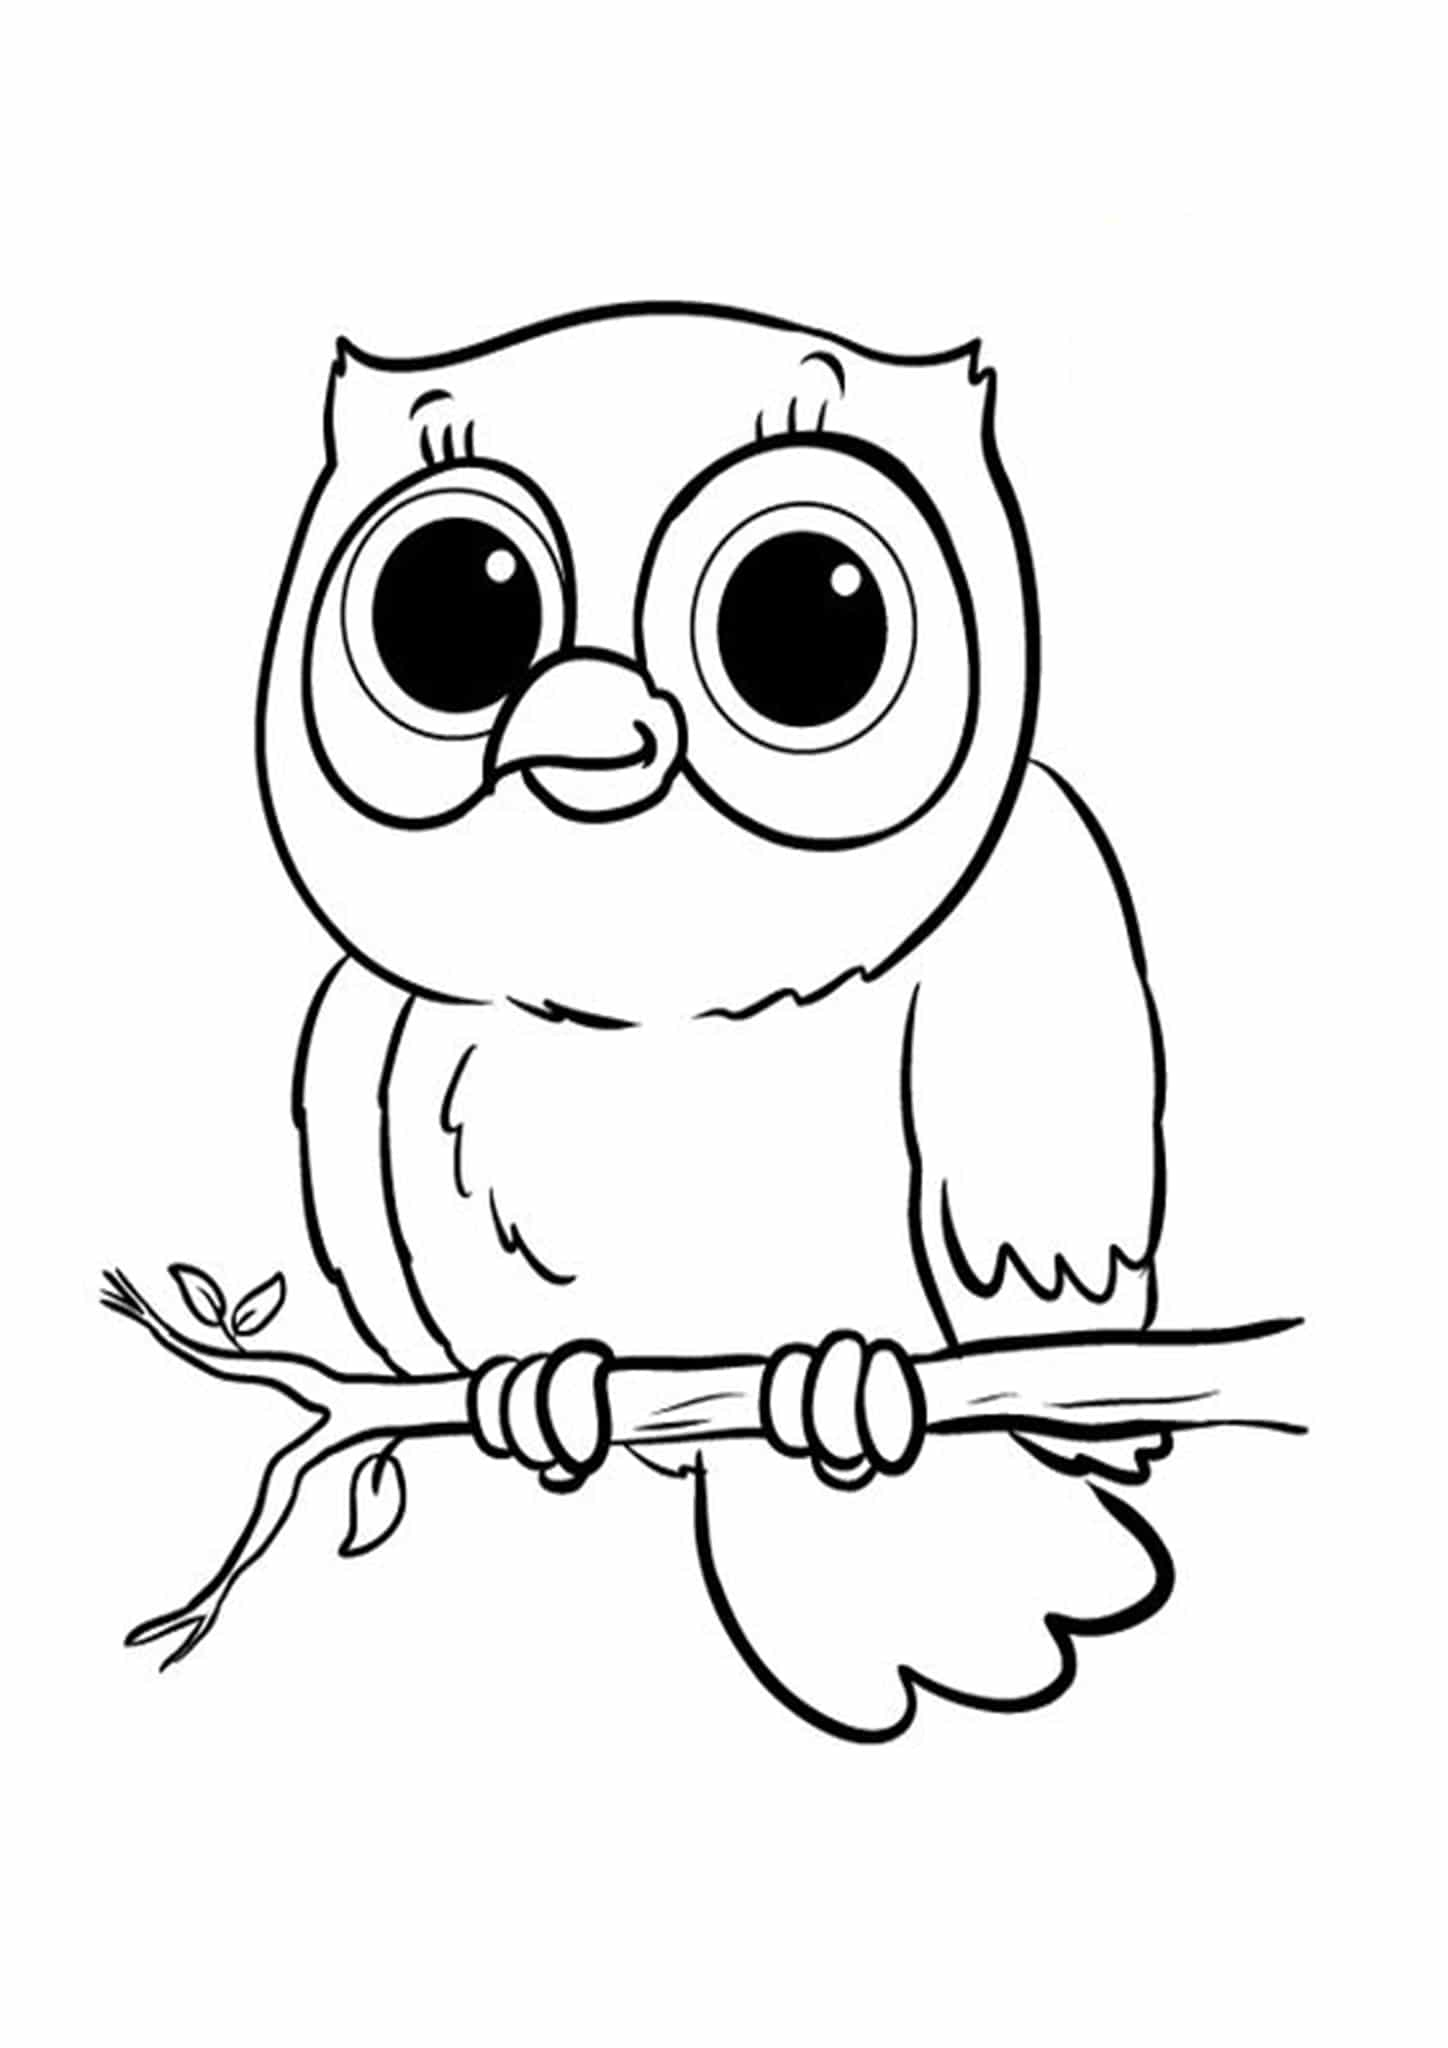 owl coloring pics owl coloring pages for adults free detailed owl coloring coloring owl pics